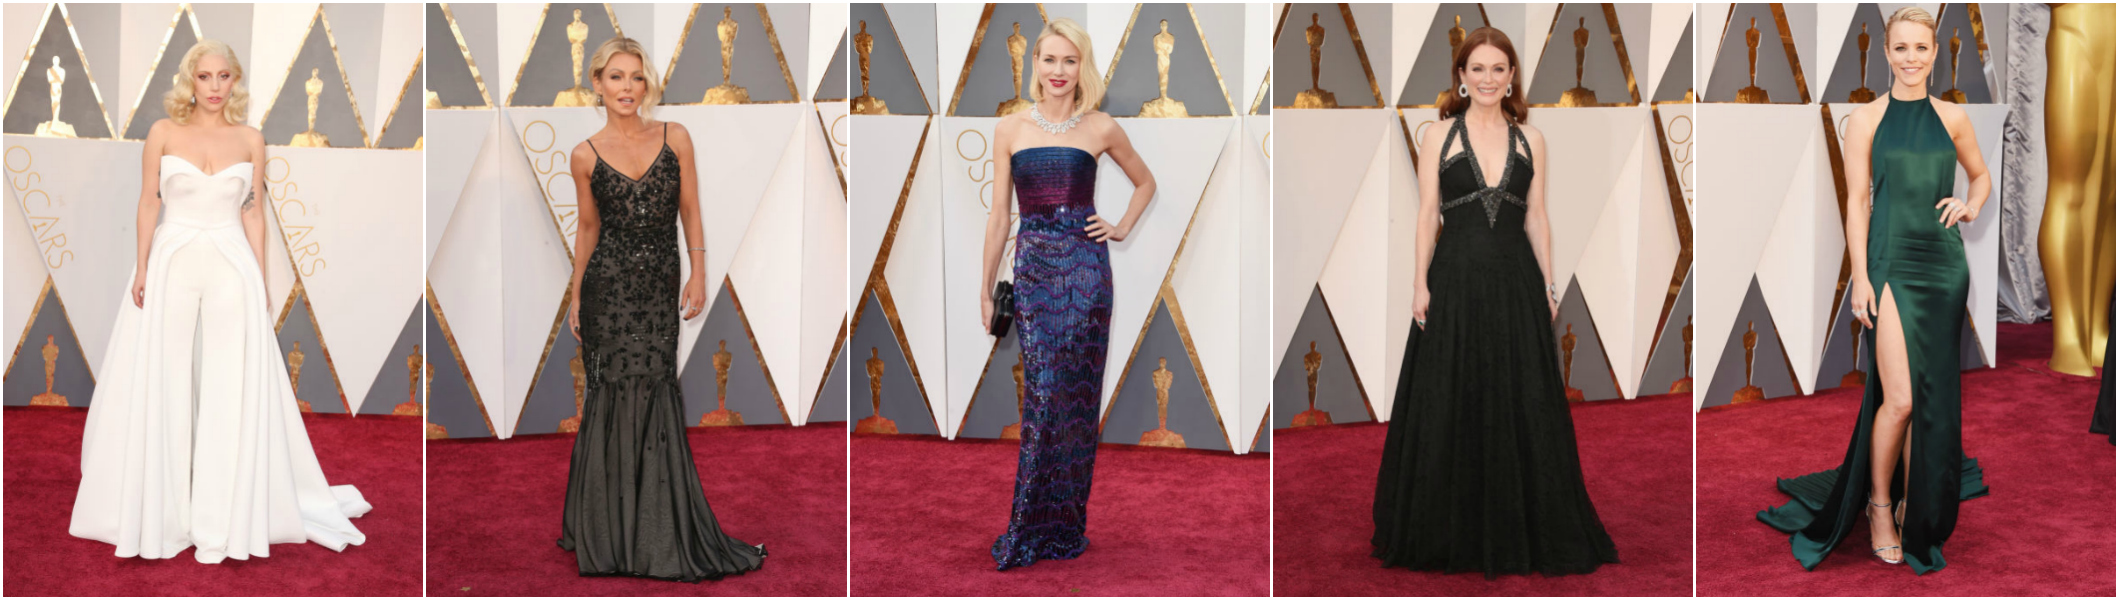 Oscars Red Carpet Celebrities 2016